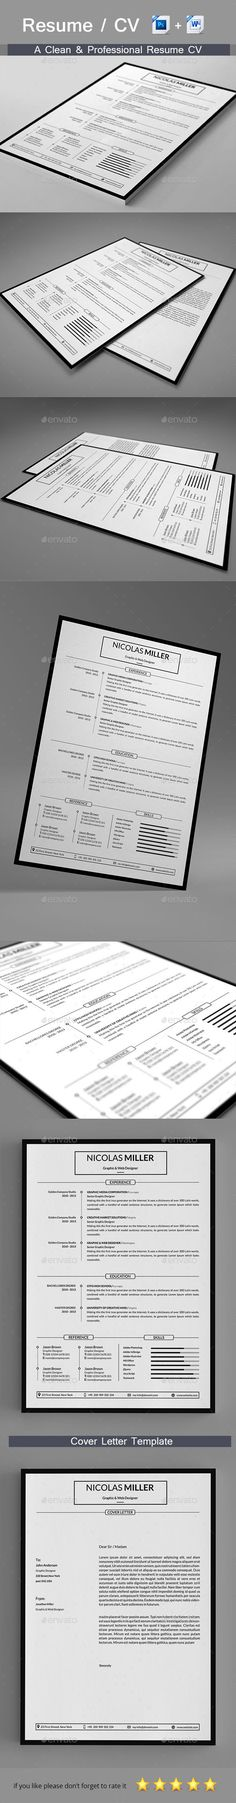 25 Creative Resume Templates To Land a New Job in Style - microsoft office resume templates 2010